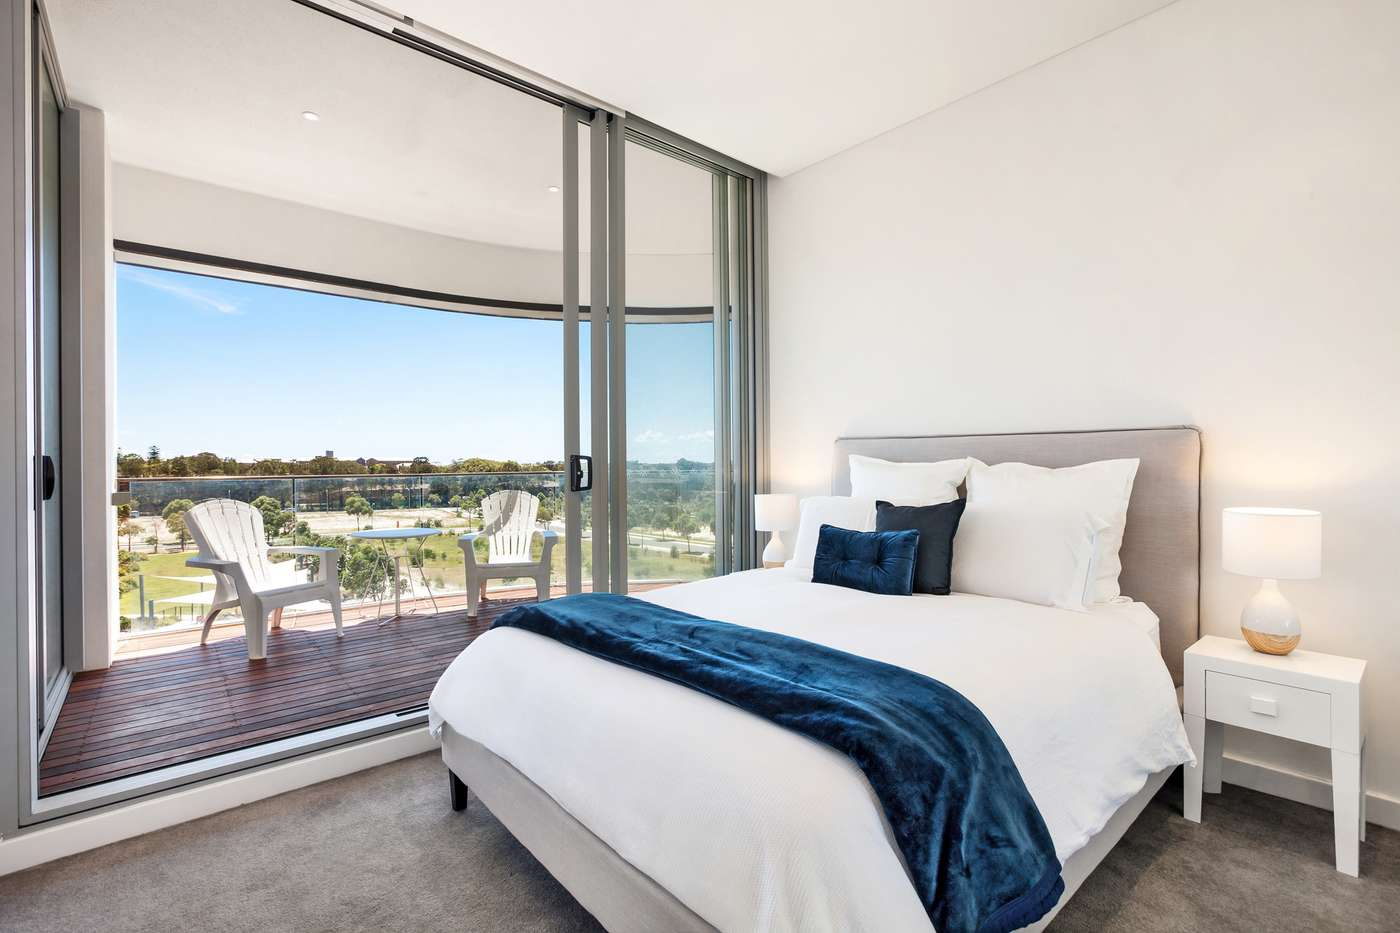 Main view of Homely apartment listing, 402/1-5 Solarch Avenue, Little Bay, NSW 2036